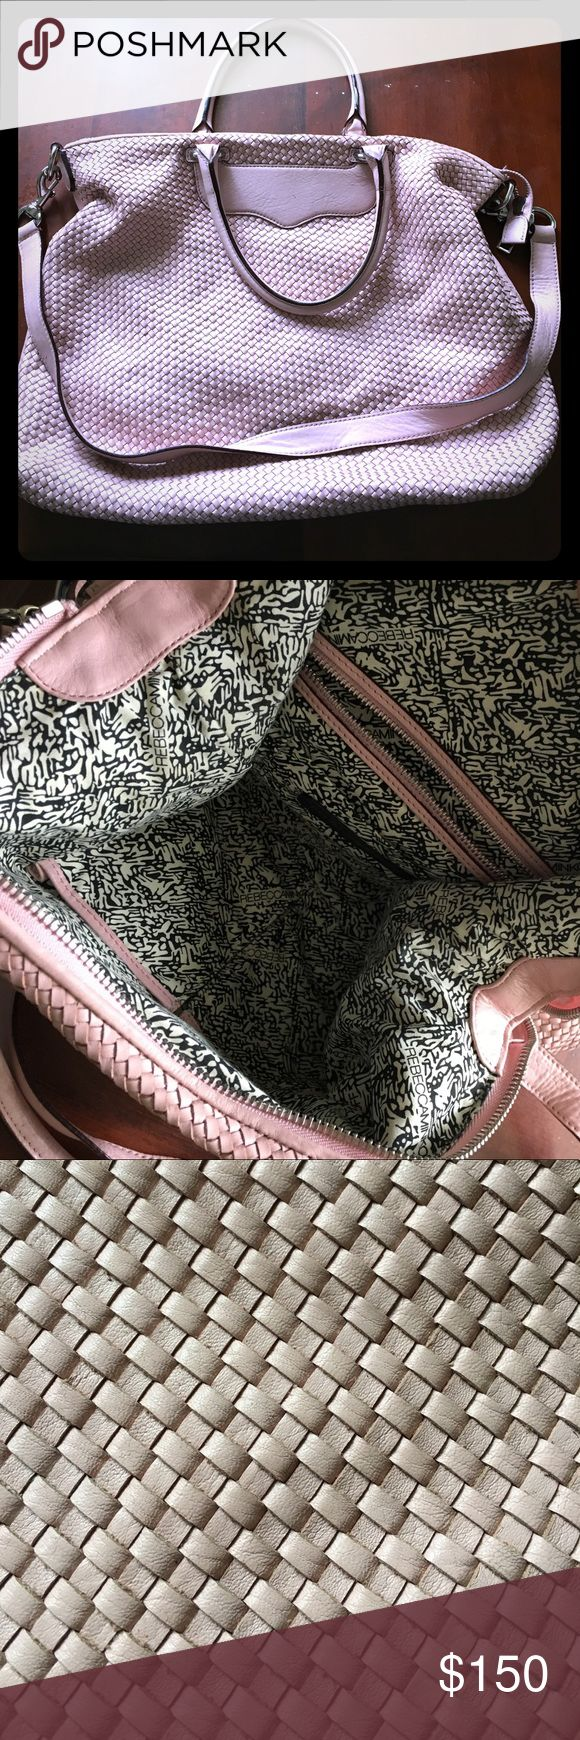 Rebecca Minkoff Work Tote! Purchased from Nordstrom. All pictures of my actual purse. Used a lot when I worked in corporate but still in good condition with lots of life left! Pretty blush pink color. Great size - can easily fit laptop, notebooks, and lunch. Handles are large enough to wear bag over shoulder. Also comes with removable cross body strap. Always got compliments on the color and the fact that it doesn't look like every other R. minkoff work tote! Rebecca Minkoff Bags